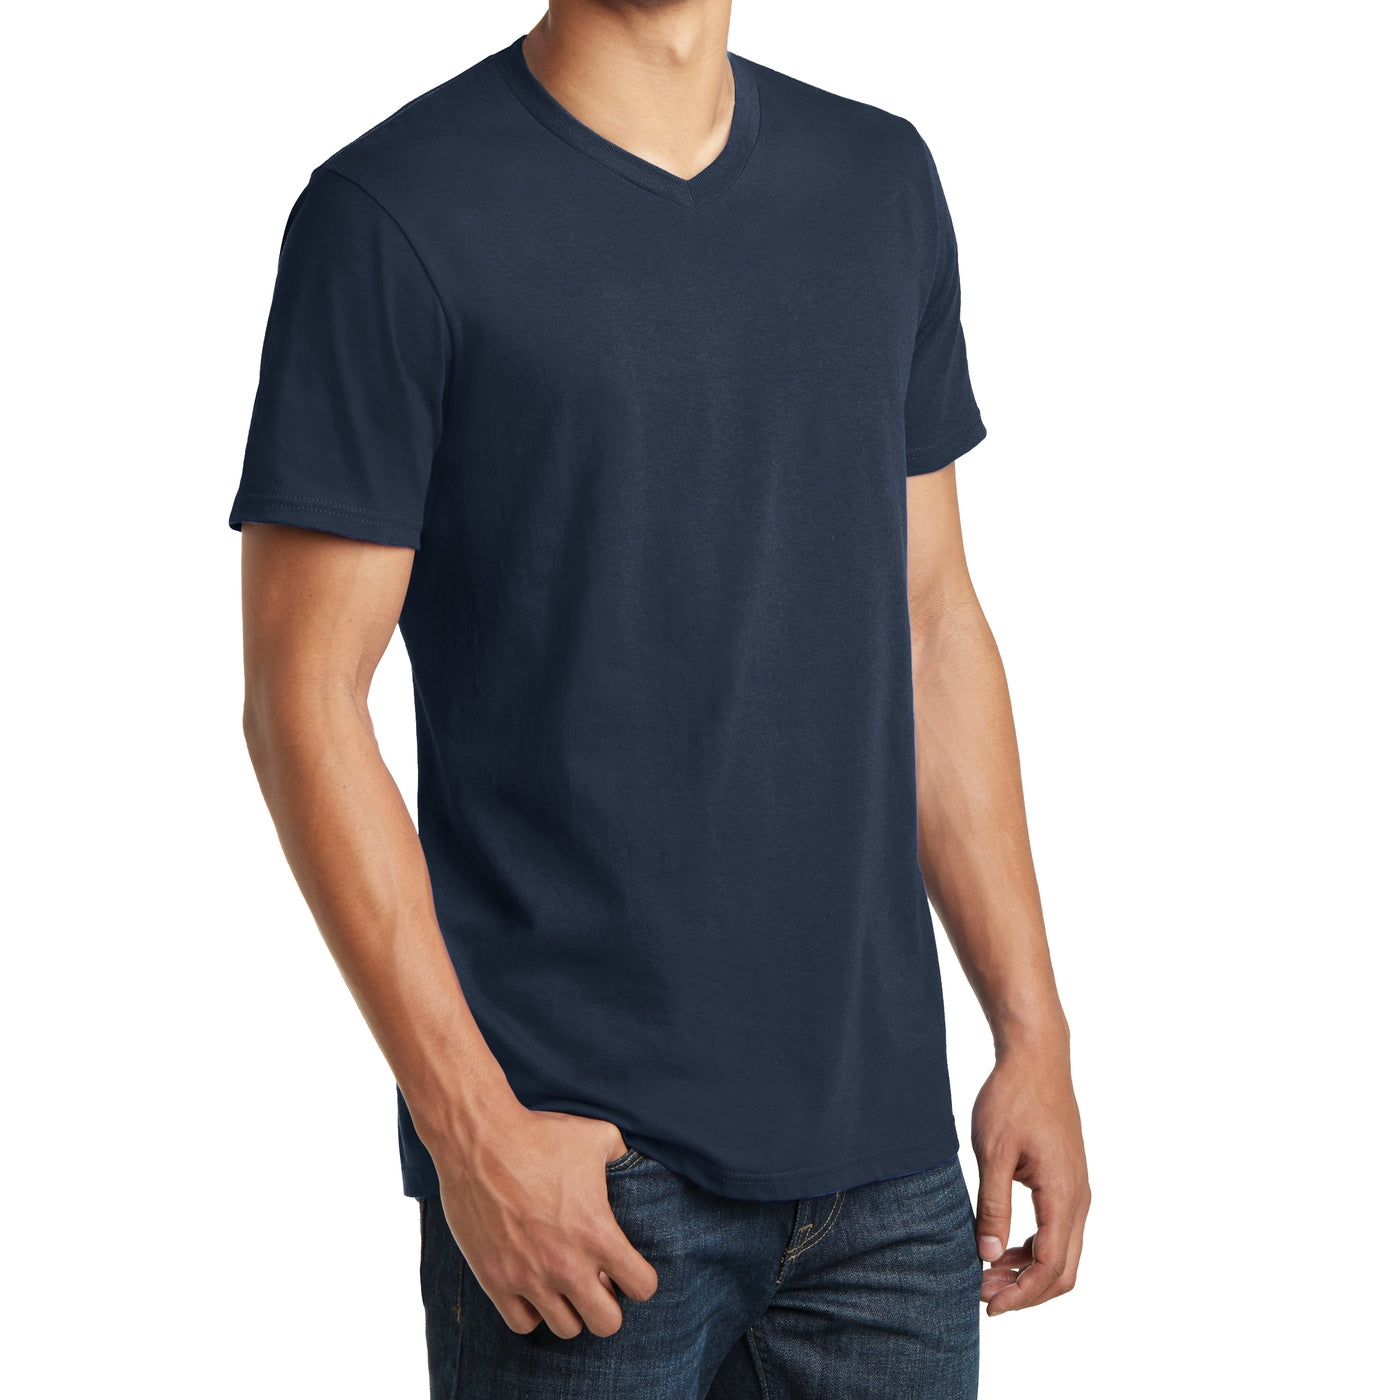 Men's Young The Concert Tee V-Neck - New Navy